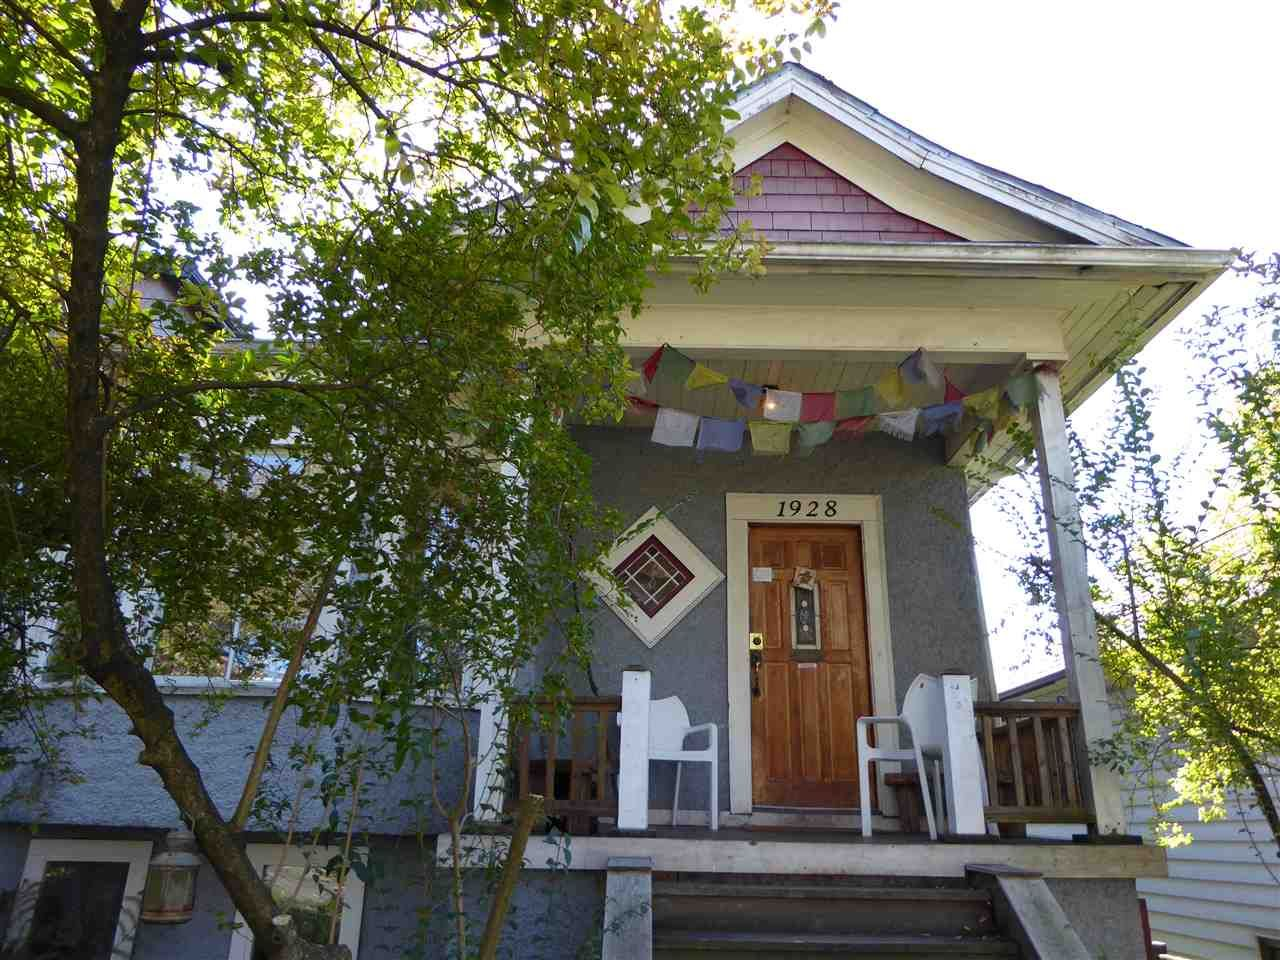 """Main Photo: 1928 E 3RD Avenue in Vancouver: Grandview VE House for sale in """"GRANDVIEW-COMMERCIAL DRIVE"""" (Vancouver East)  : MLS®# R2004010"""